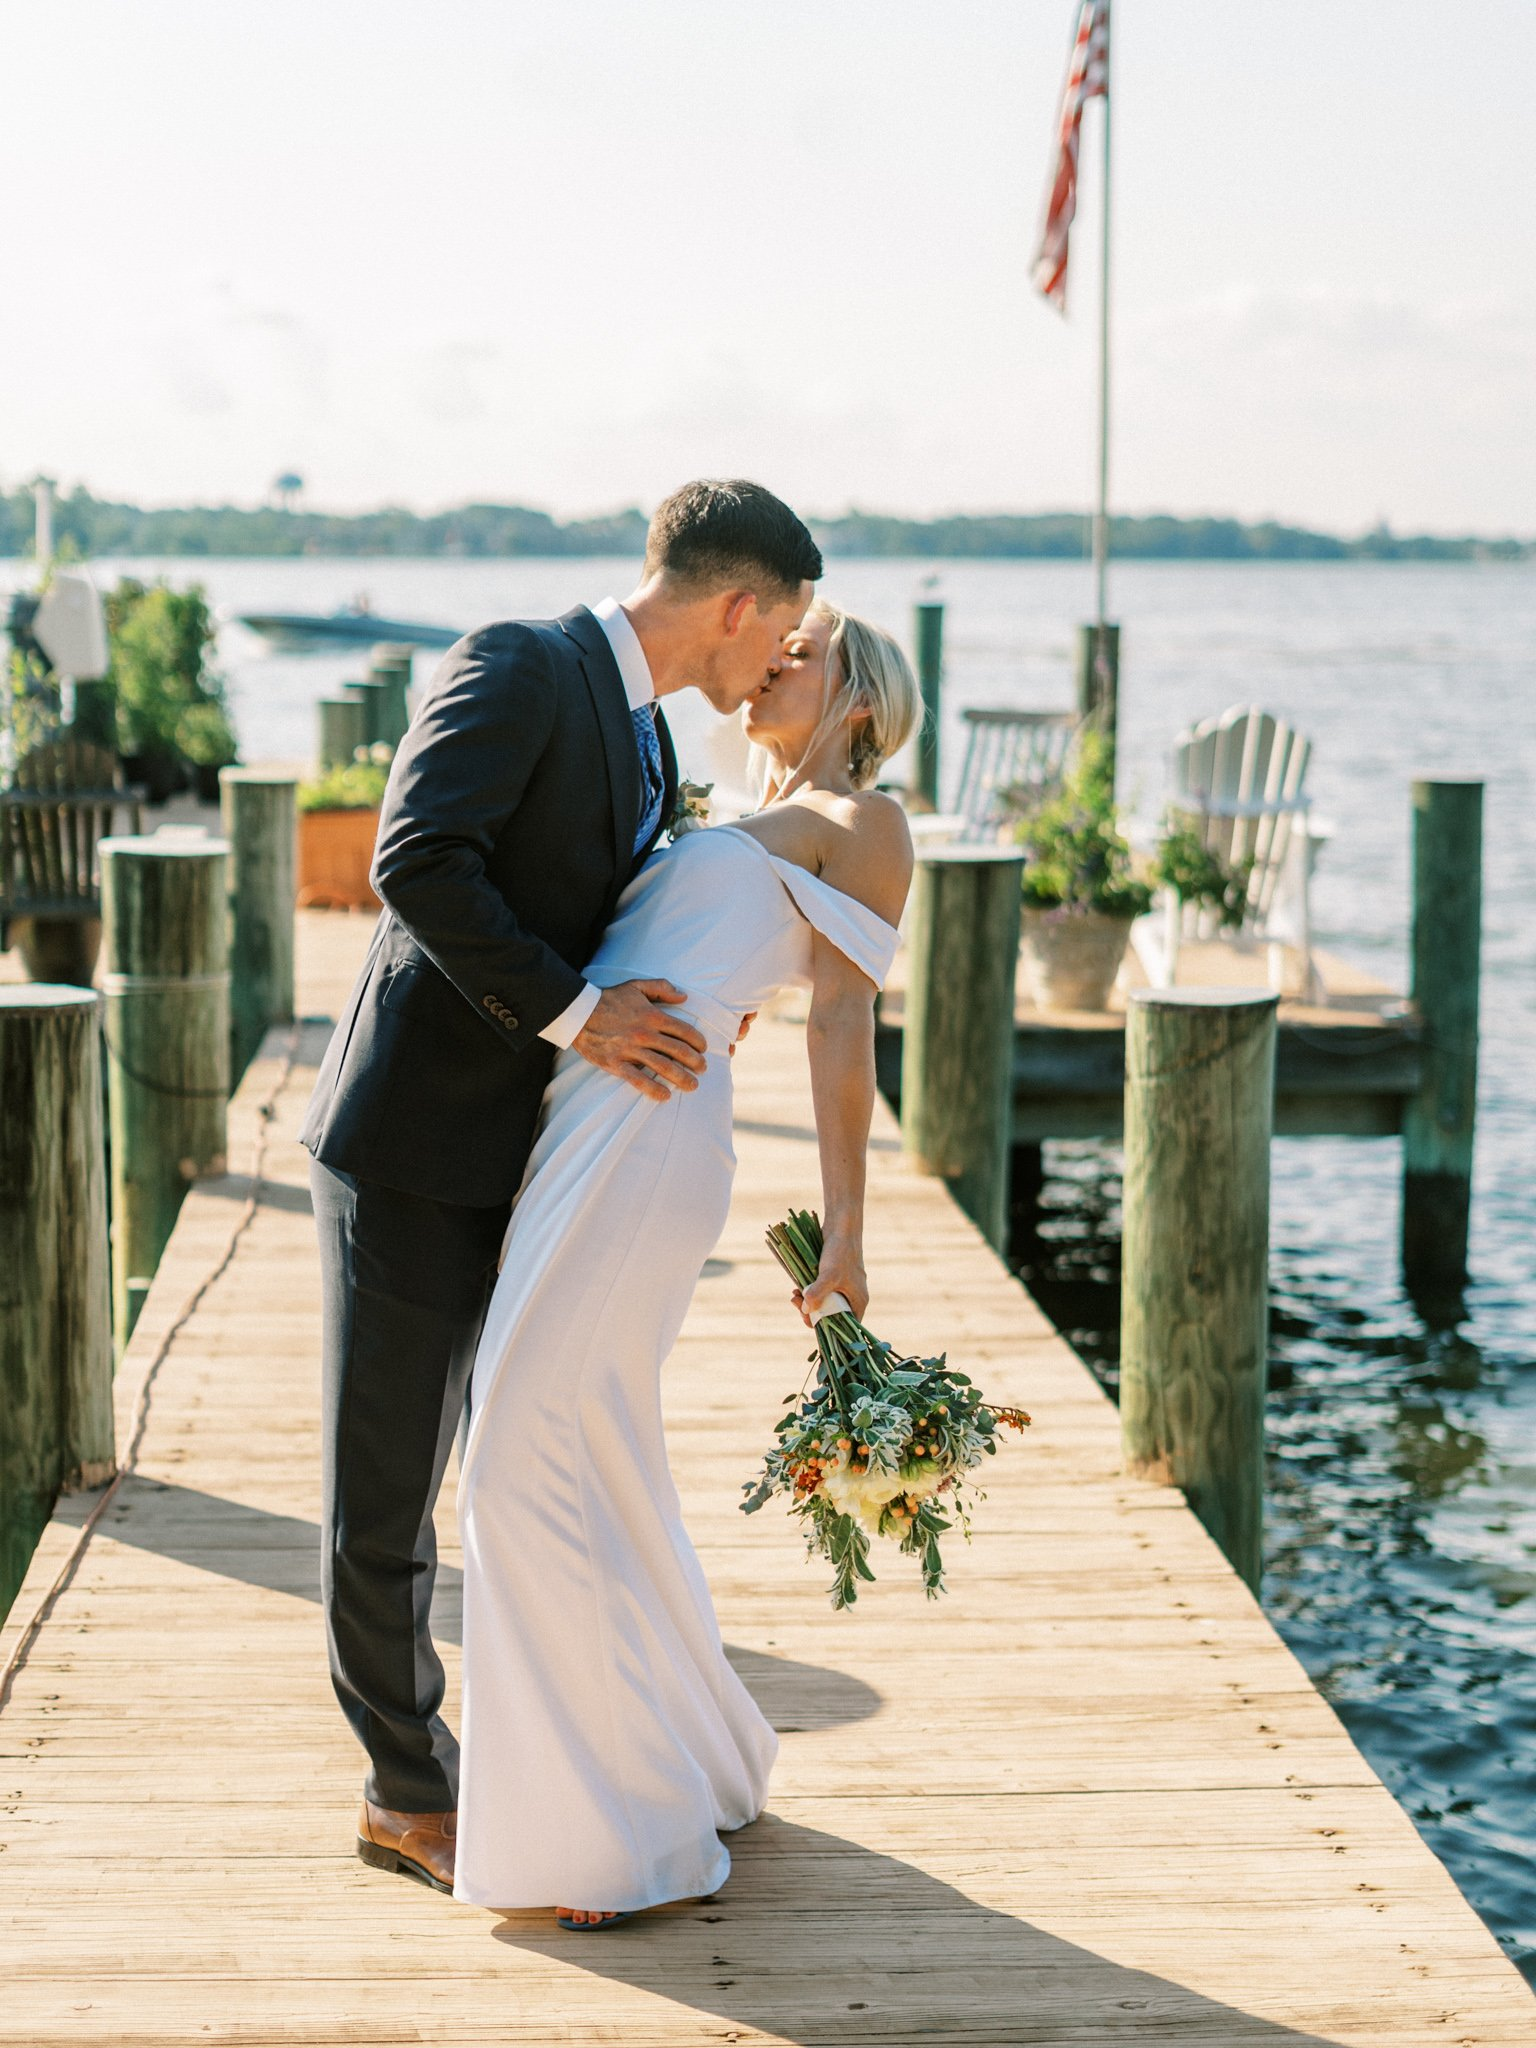 Gray_Joiner_e. losinio photography_annapolis-maryland-waterfront-elopement-256